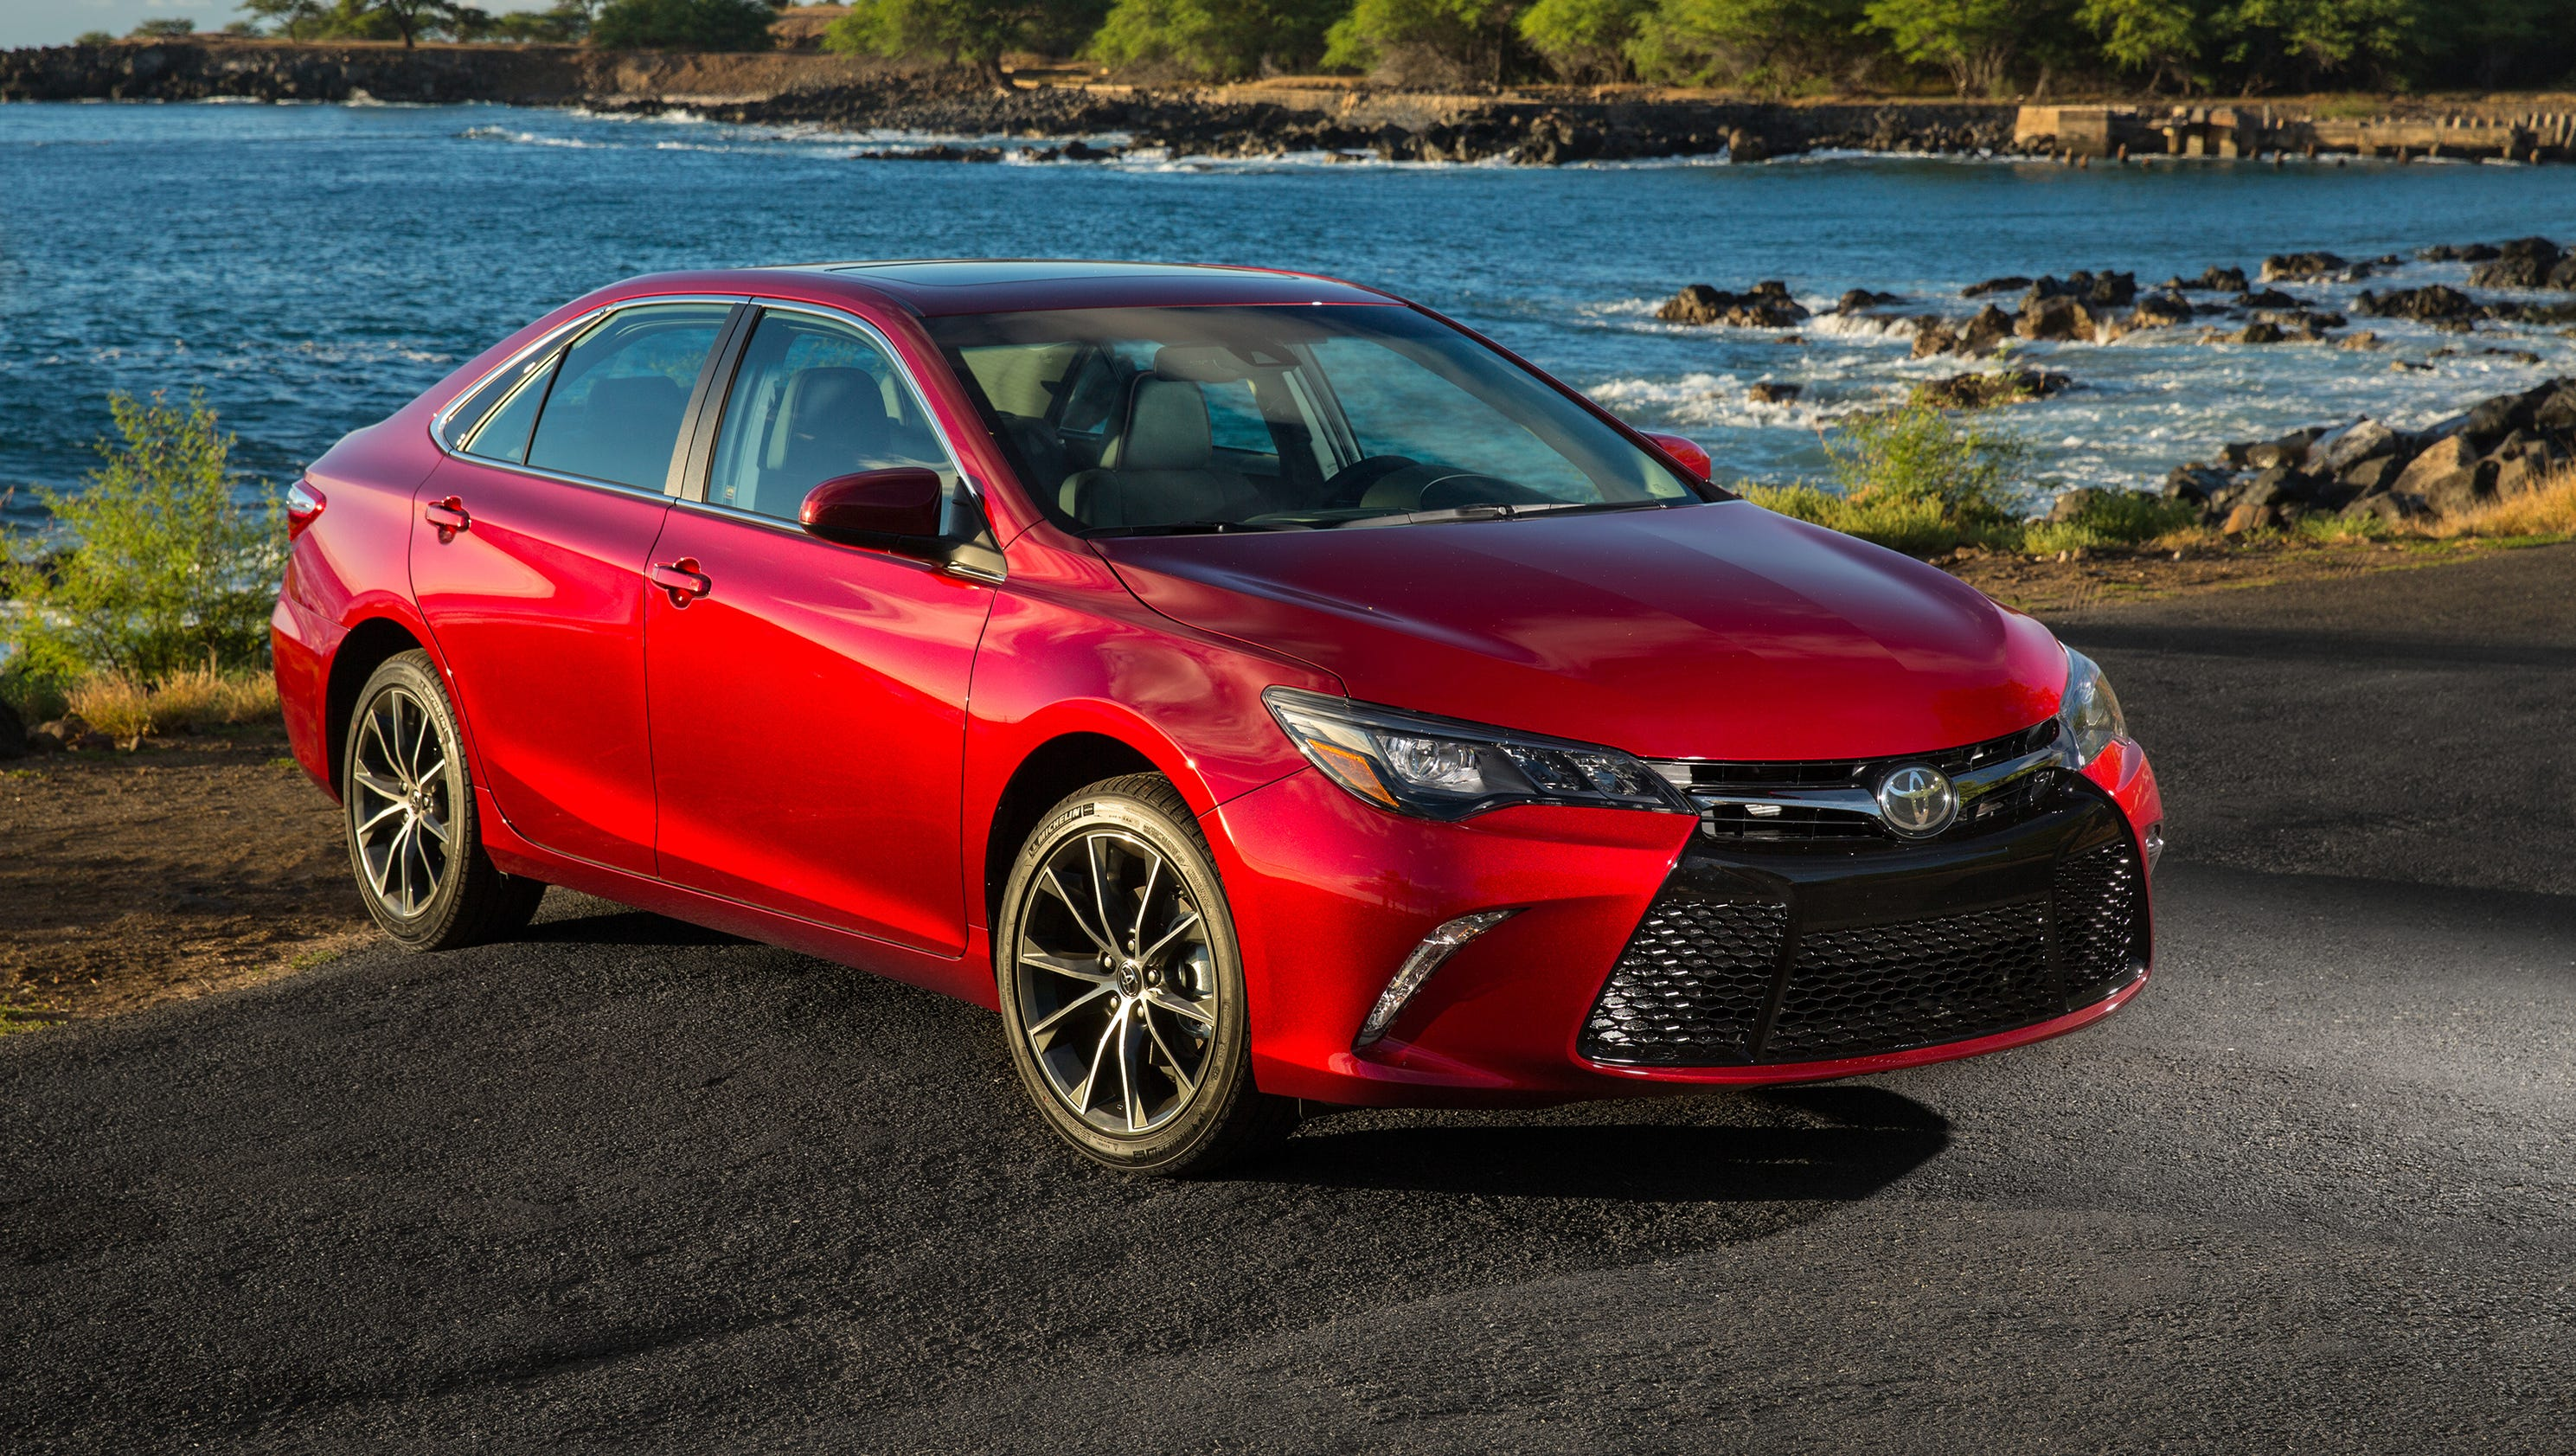 excellent camry usautomobile il toyota chicago used cars in deal